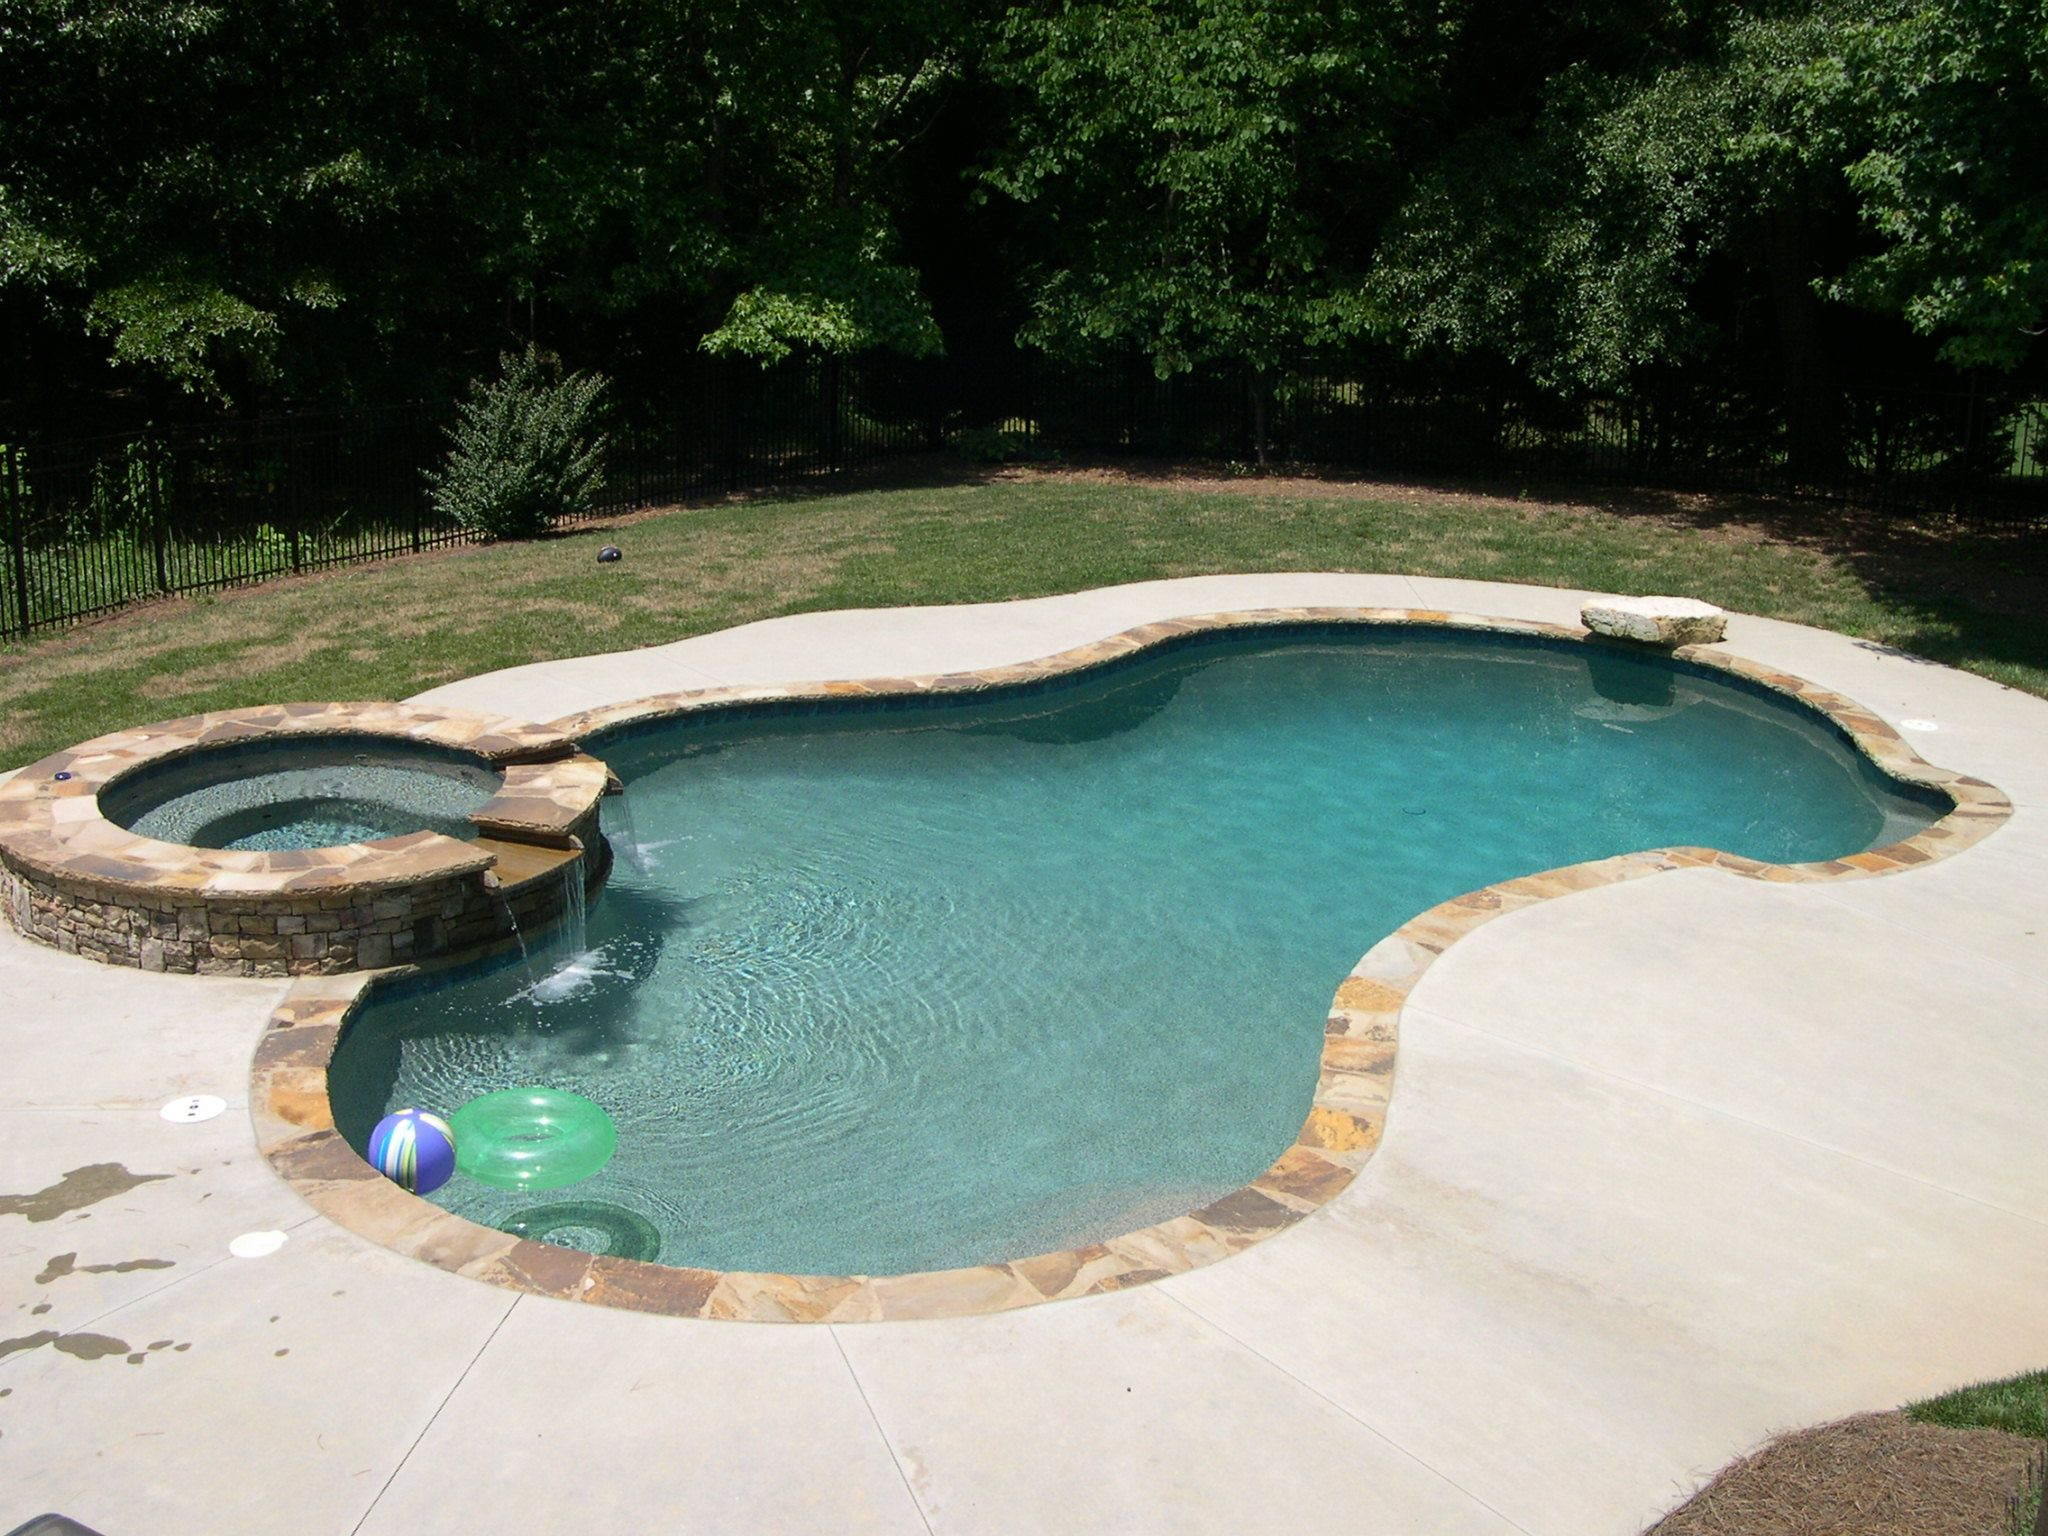 Jacuzzi Oval Pool Designs For Small Yards Small Pool Designs Perth And